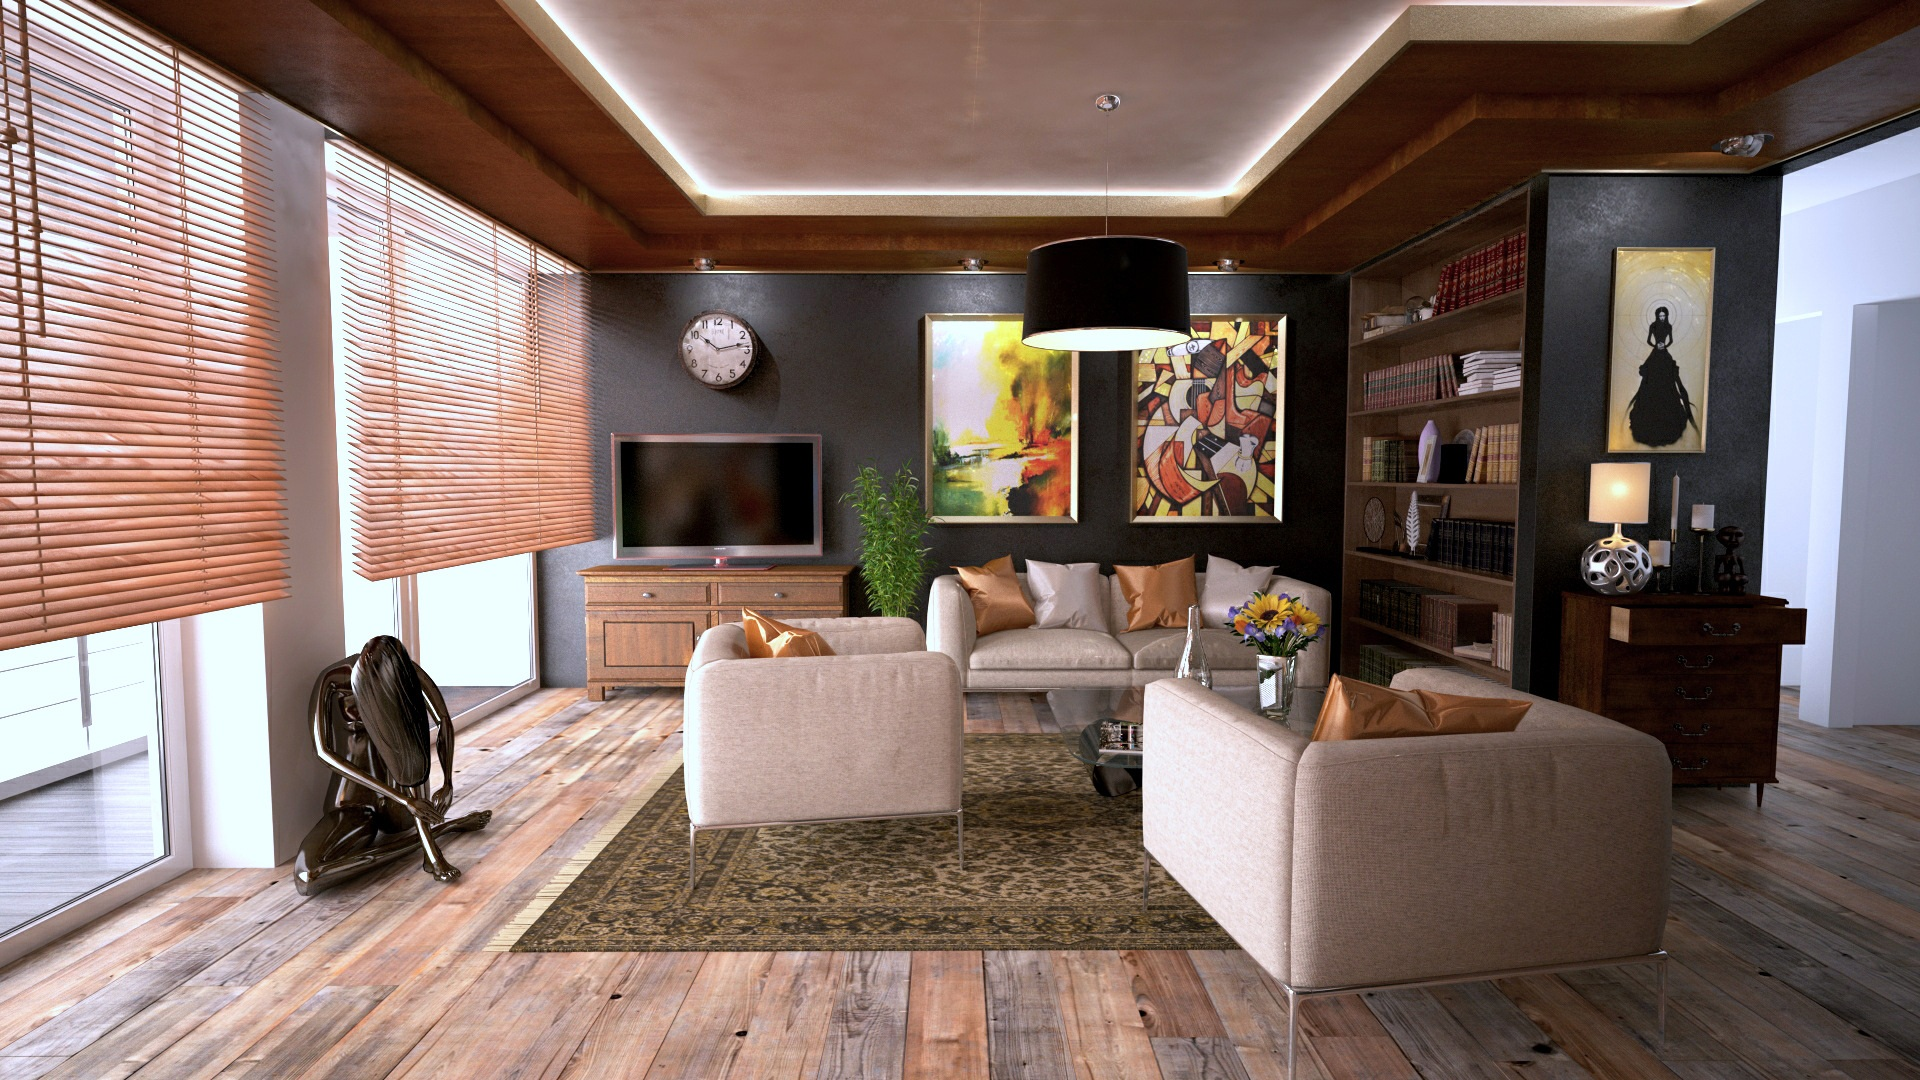 Budget friendly floors for your family home